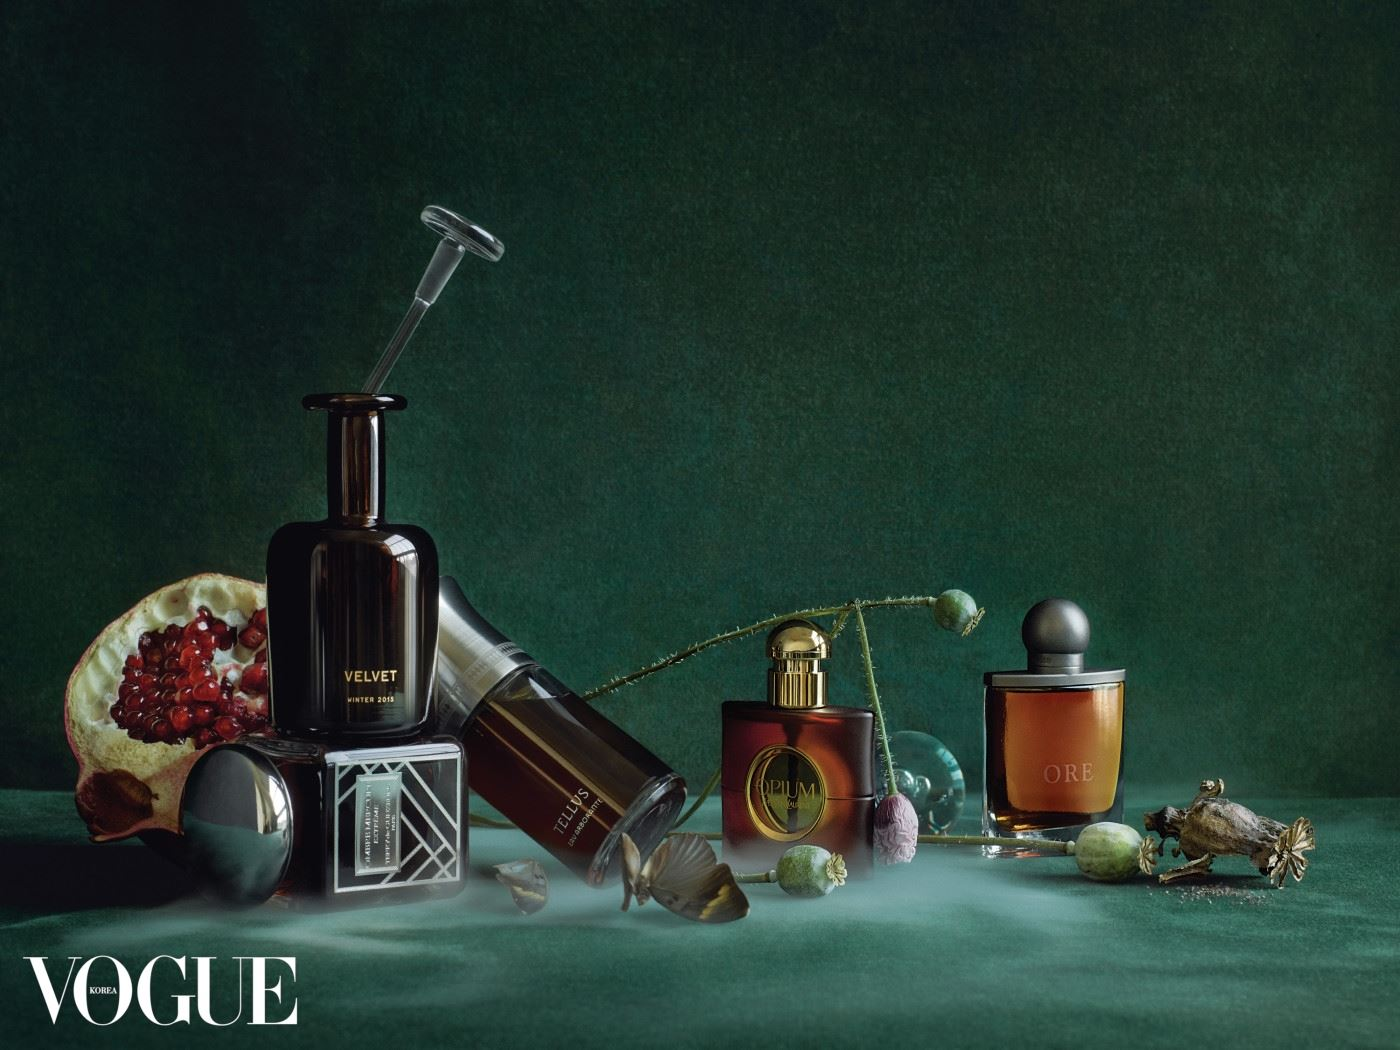 Feature, beauty, modern perfumes, addicted, spellbound, studio shot of fragrances, scents, emerald green background, decayed flowers, fruit, pomegranate